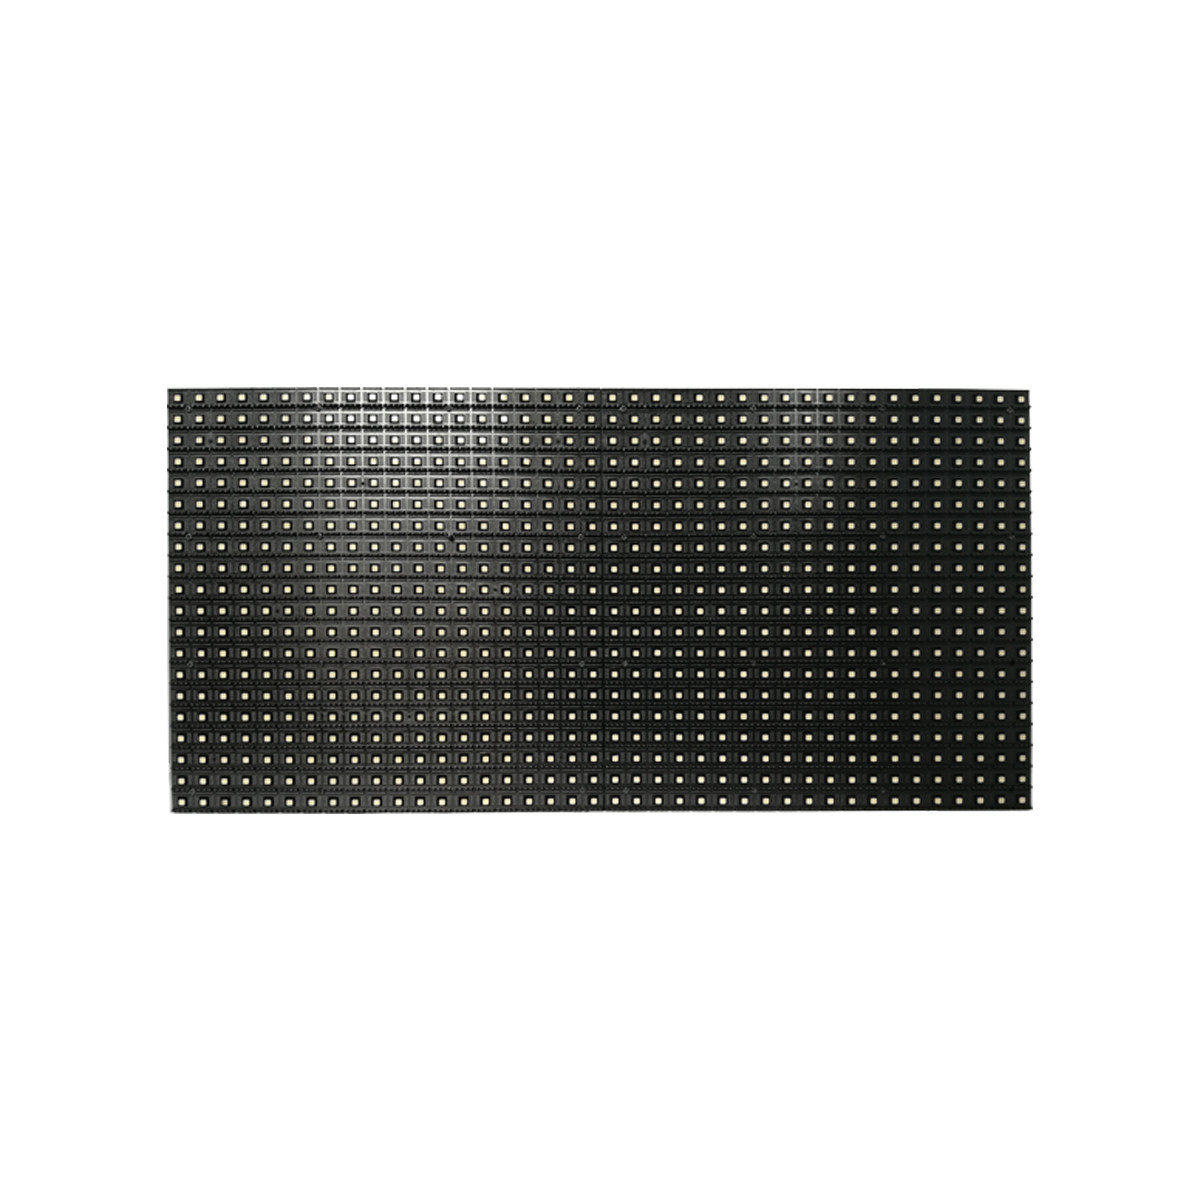 P8  Outdoor SMD LED Display Module 320*160mm SMD3535 5000cd/㎡ Brightness 1920Hz High Refresh